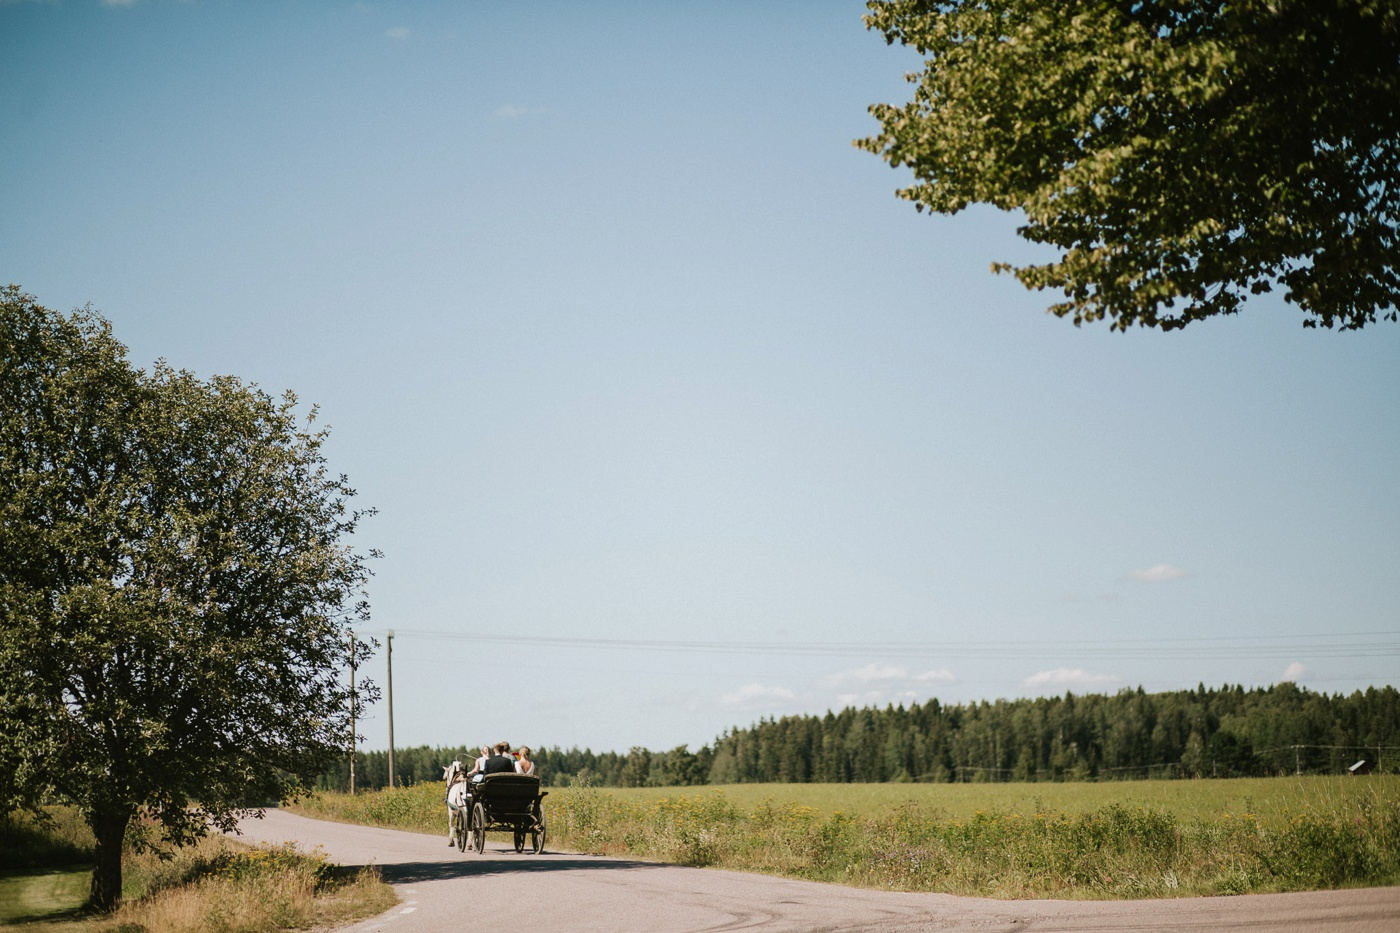 ceciliajoakim_sweden-countryside-summer-wedding_melbourne-fun-quirky-wedding-photography_31